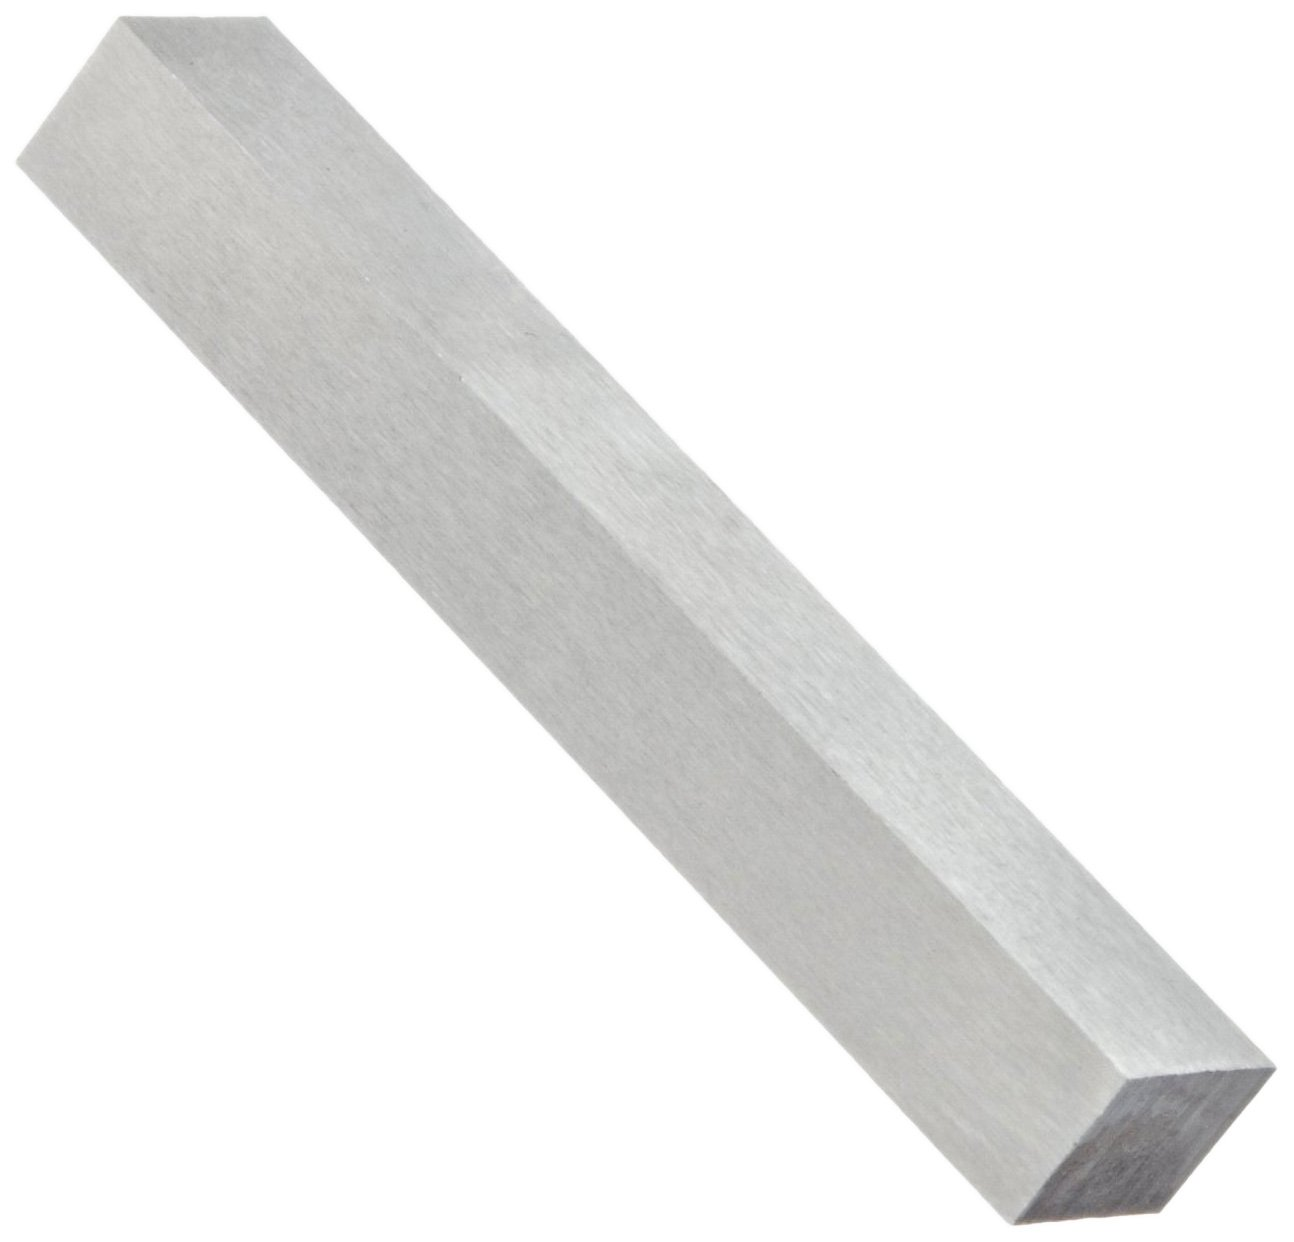 Union Butterfield 707 Tool Bit Blank, High-Speed Steel, 4-1/2'' Overall Length, 5/8'' Size